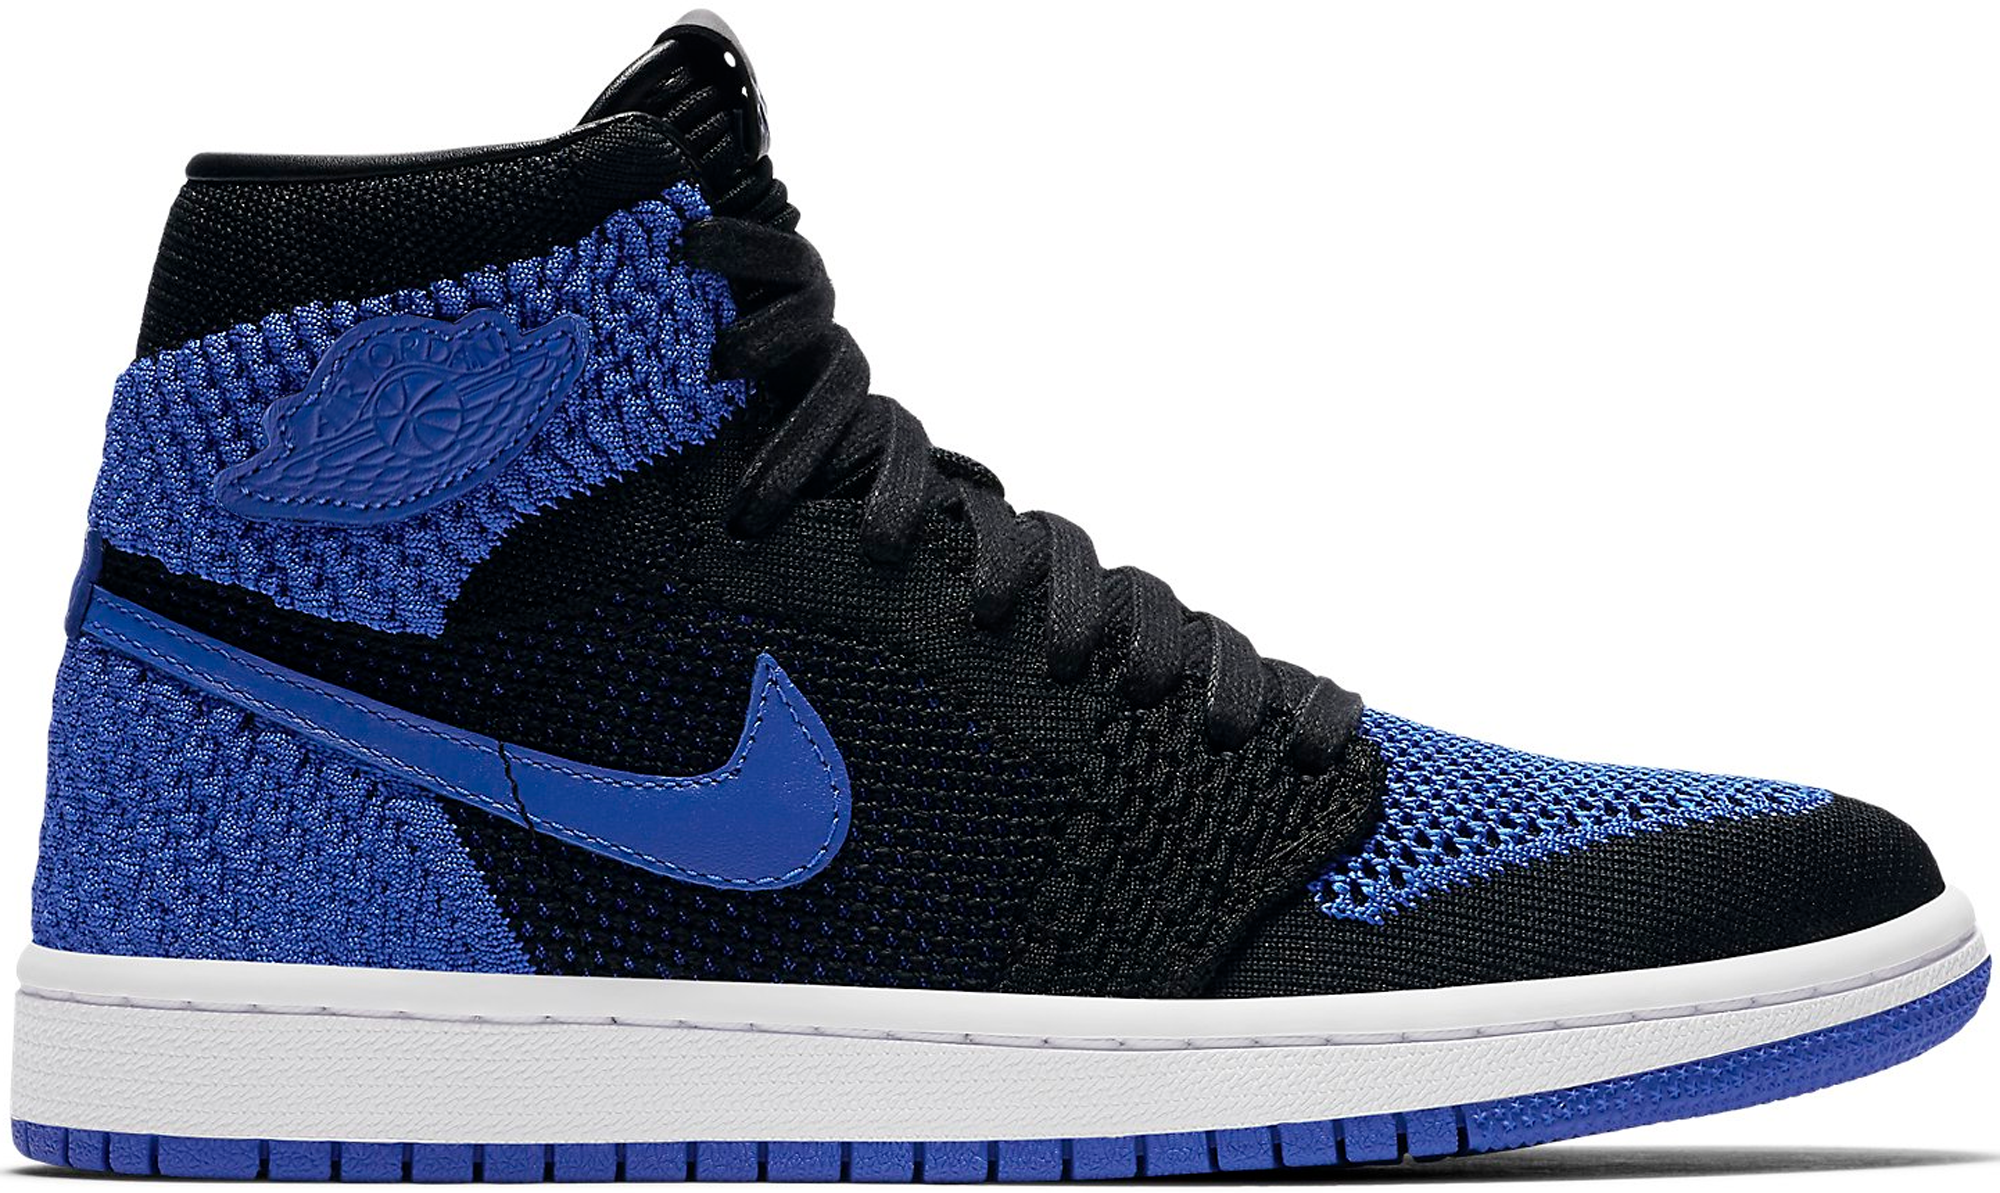 release date: 2c8cc b81f7 I just listed an Ask for the Jordan 1 Retro High Flyknit Royal (GS) on  StockX